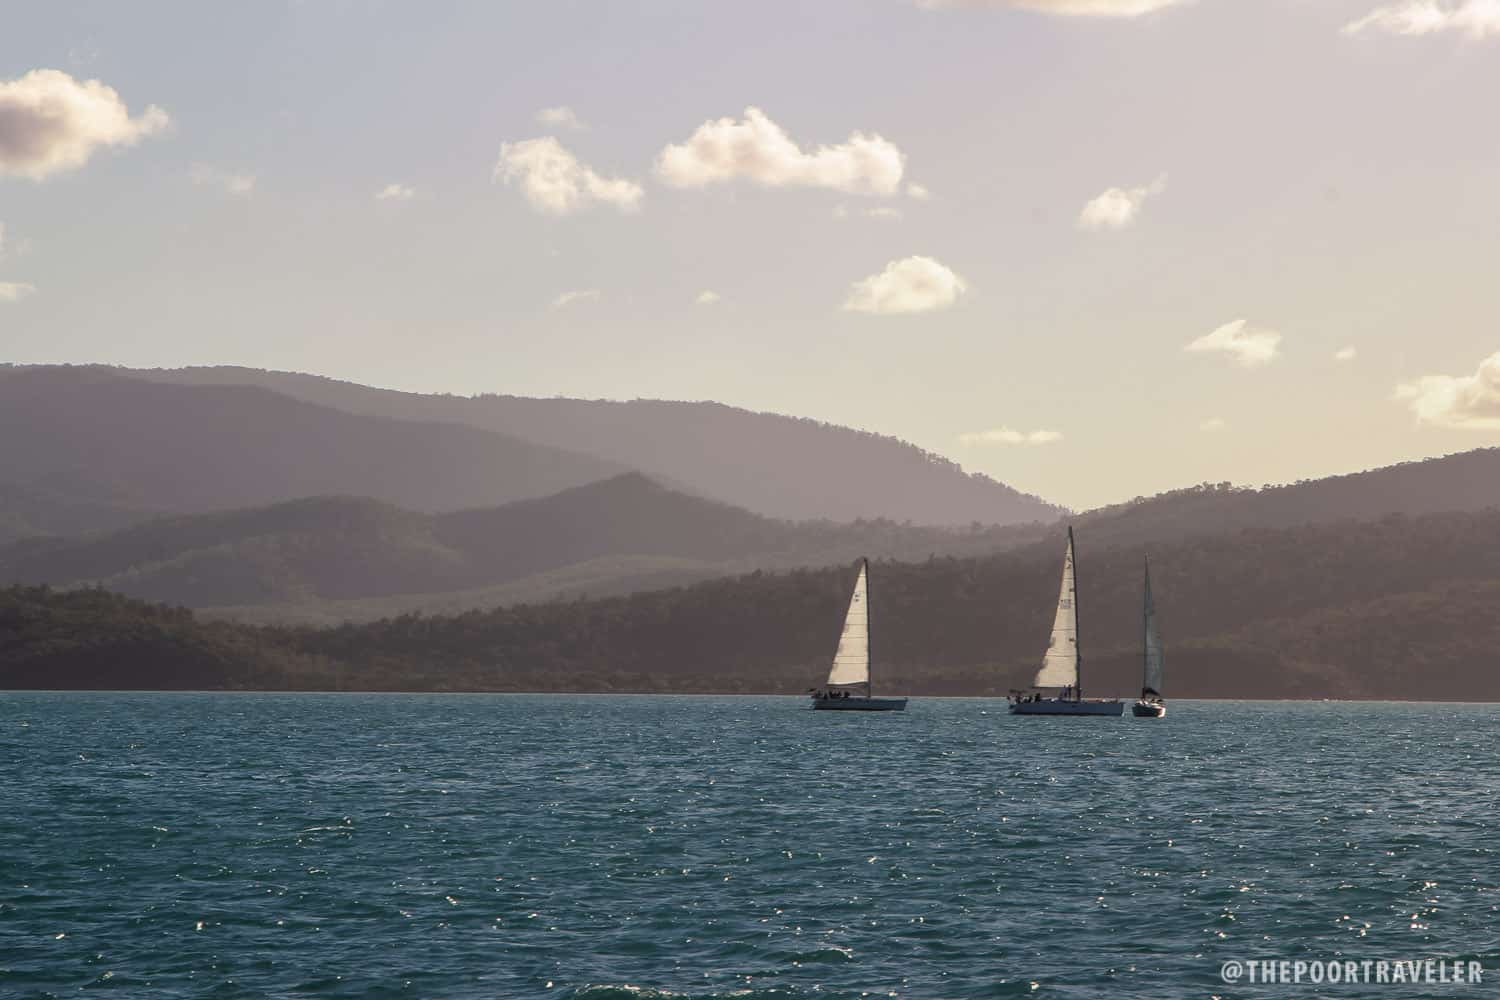 Other sailboats around Whitsundays